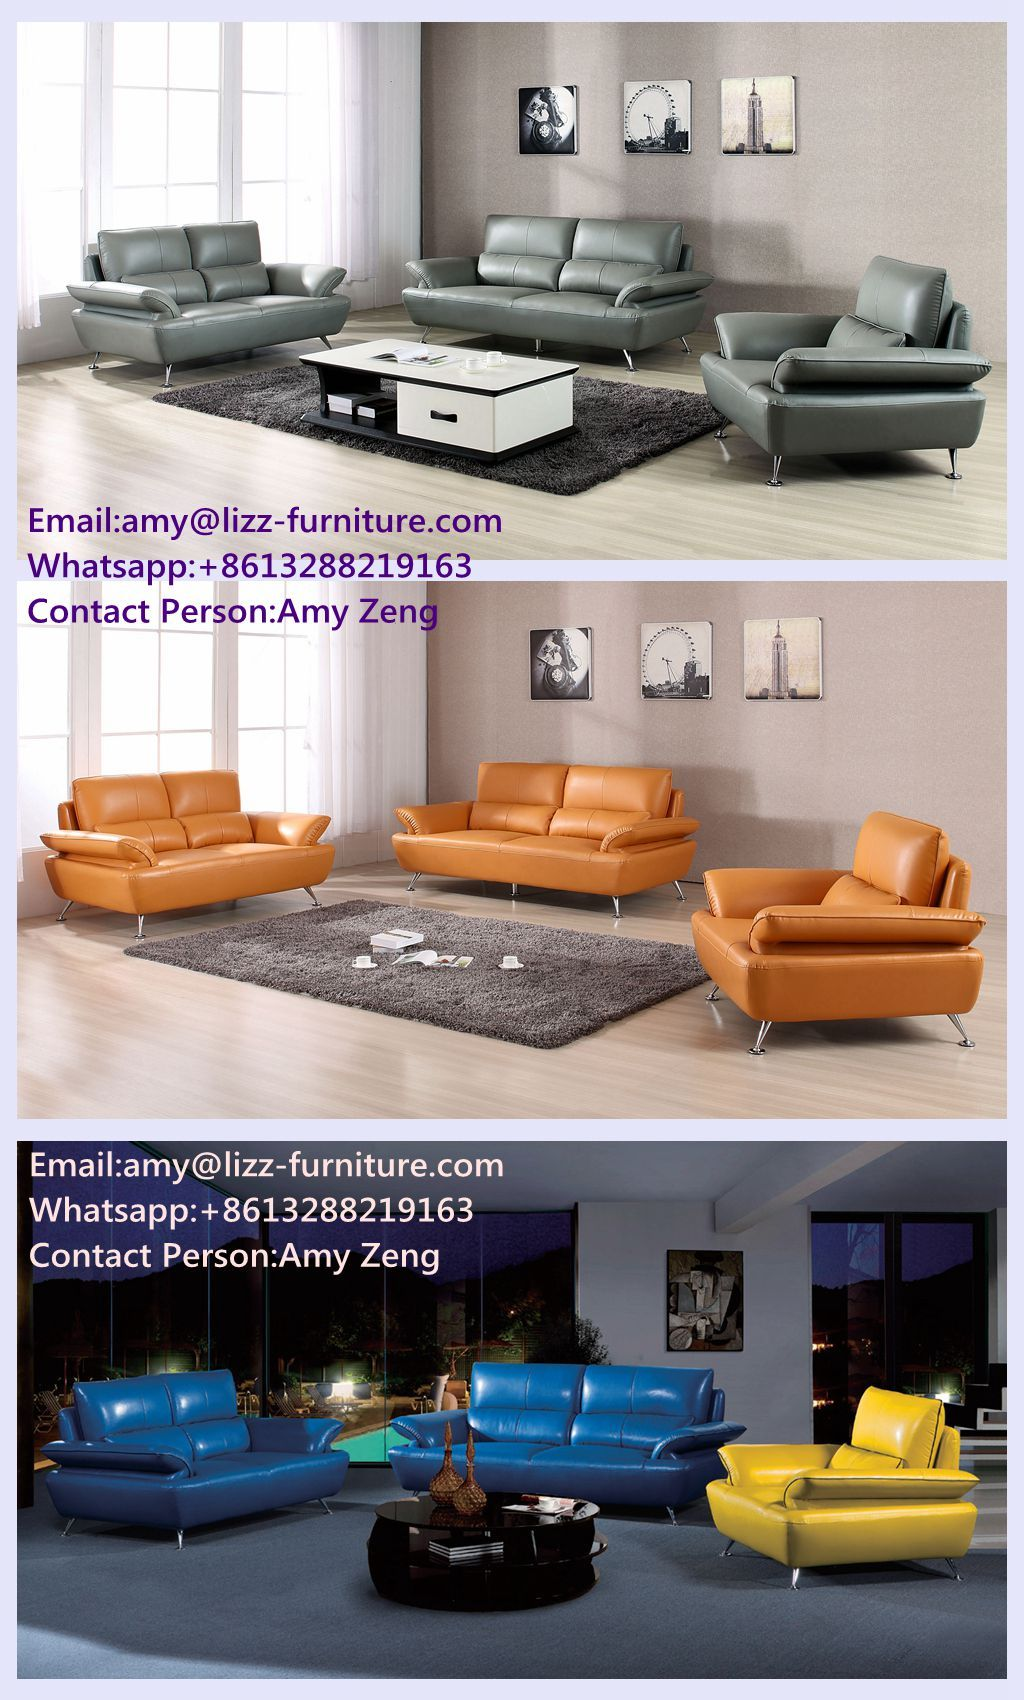 The Best Comfortable Sofa Set In China Lizz Furniture Sofa Furniture China Home Livingroo Sofa Furniture Living Room Sets Furniture Living Room Furniture